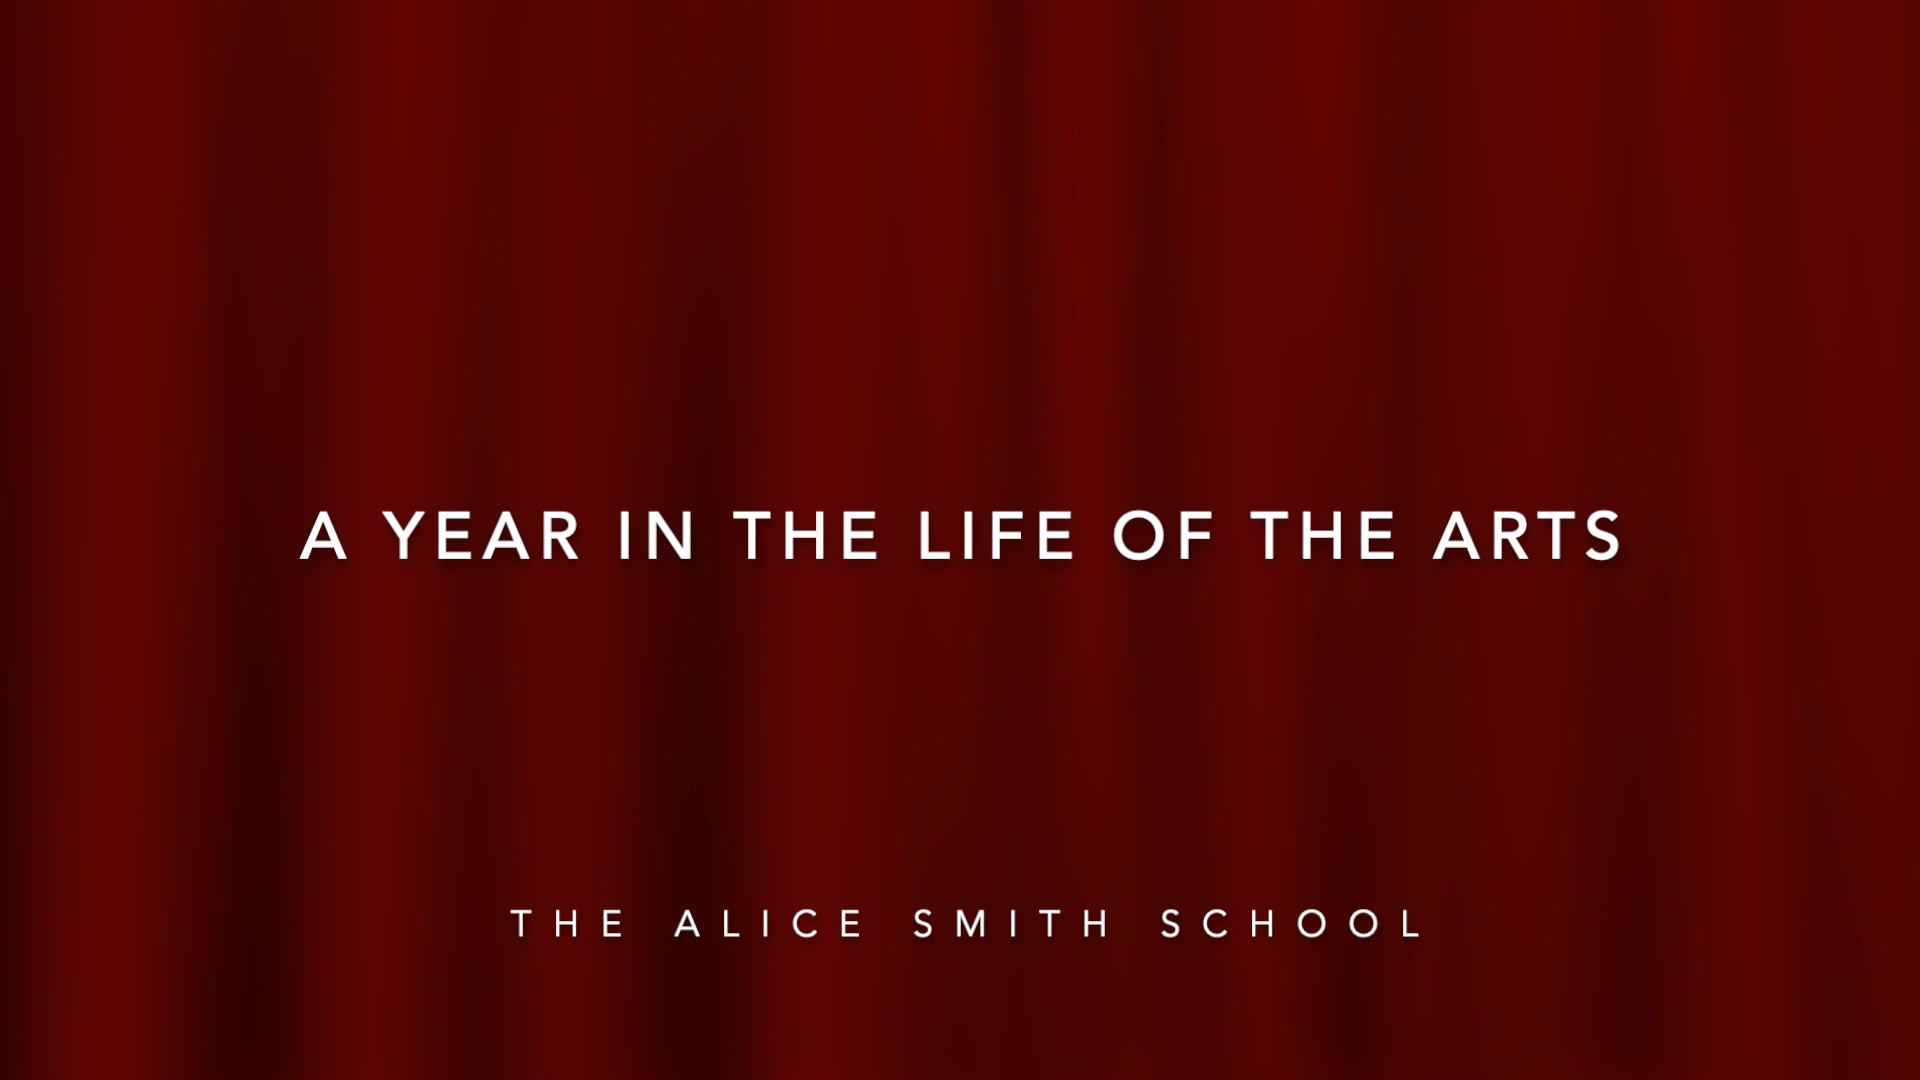 A Year in the Life of the Arts 2020